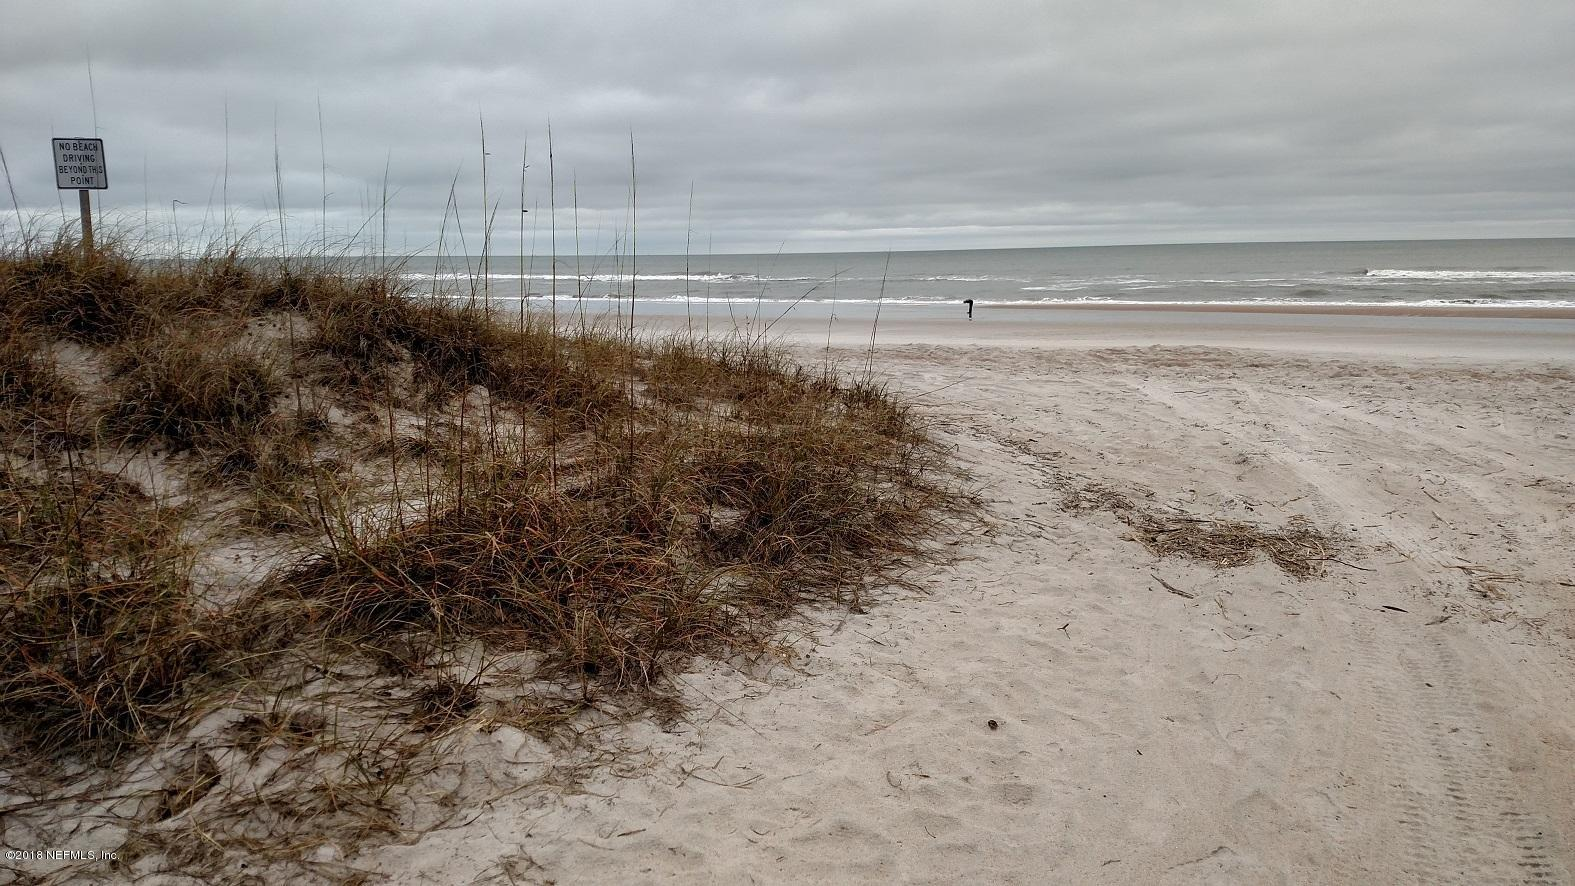 1513 SCOTT, FERNANDINA BEACH, FLORIDA 32034, ,Vacant land,For sale,SCOTT,920536